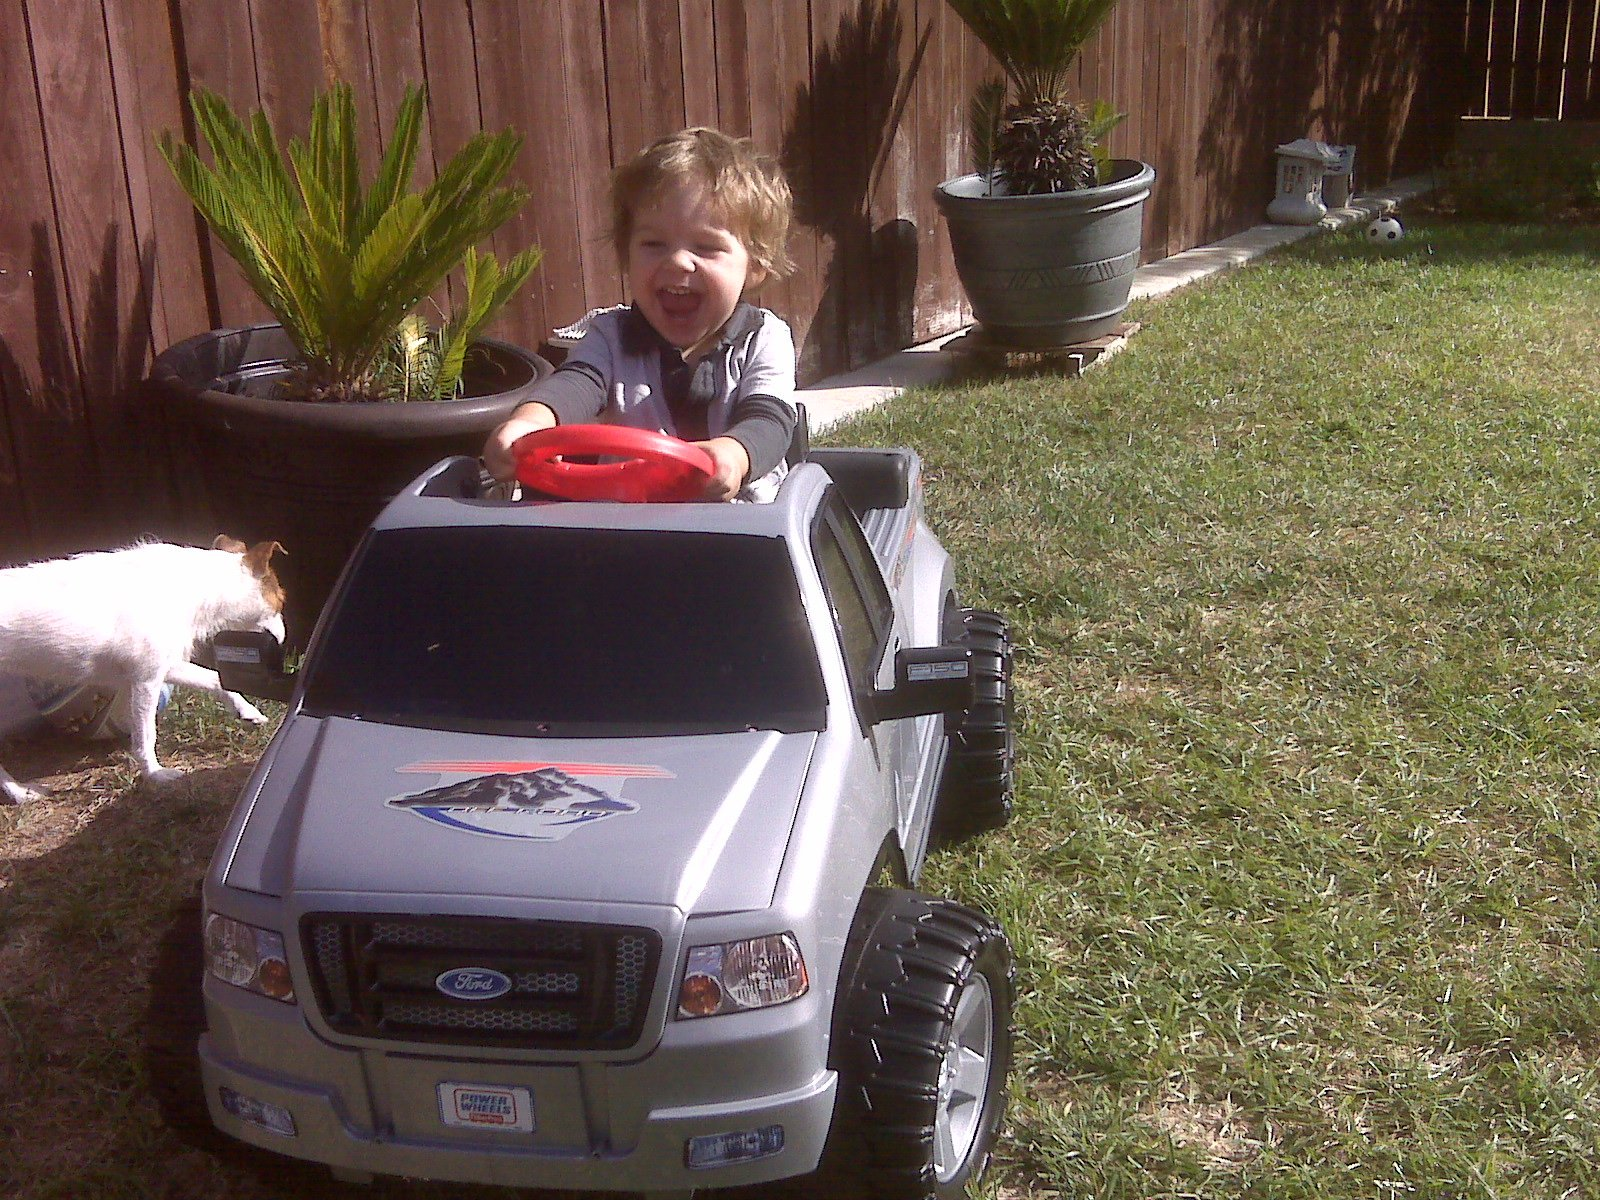 Brody's 2nd birthday and his new truck